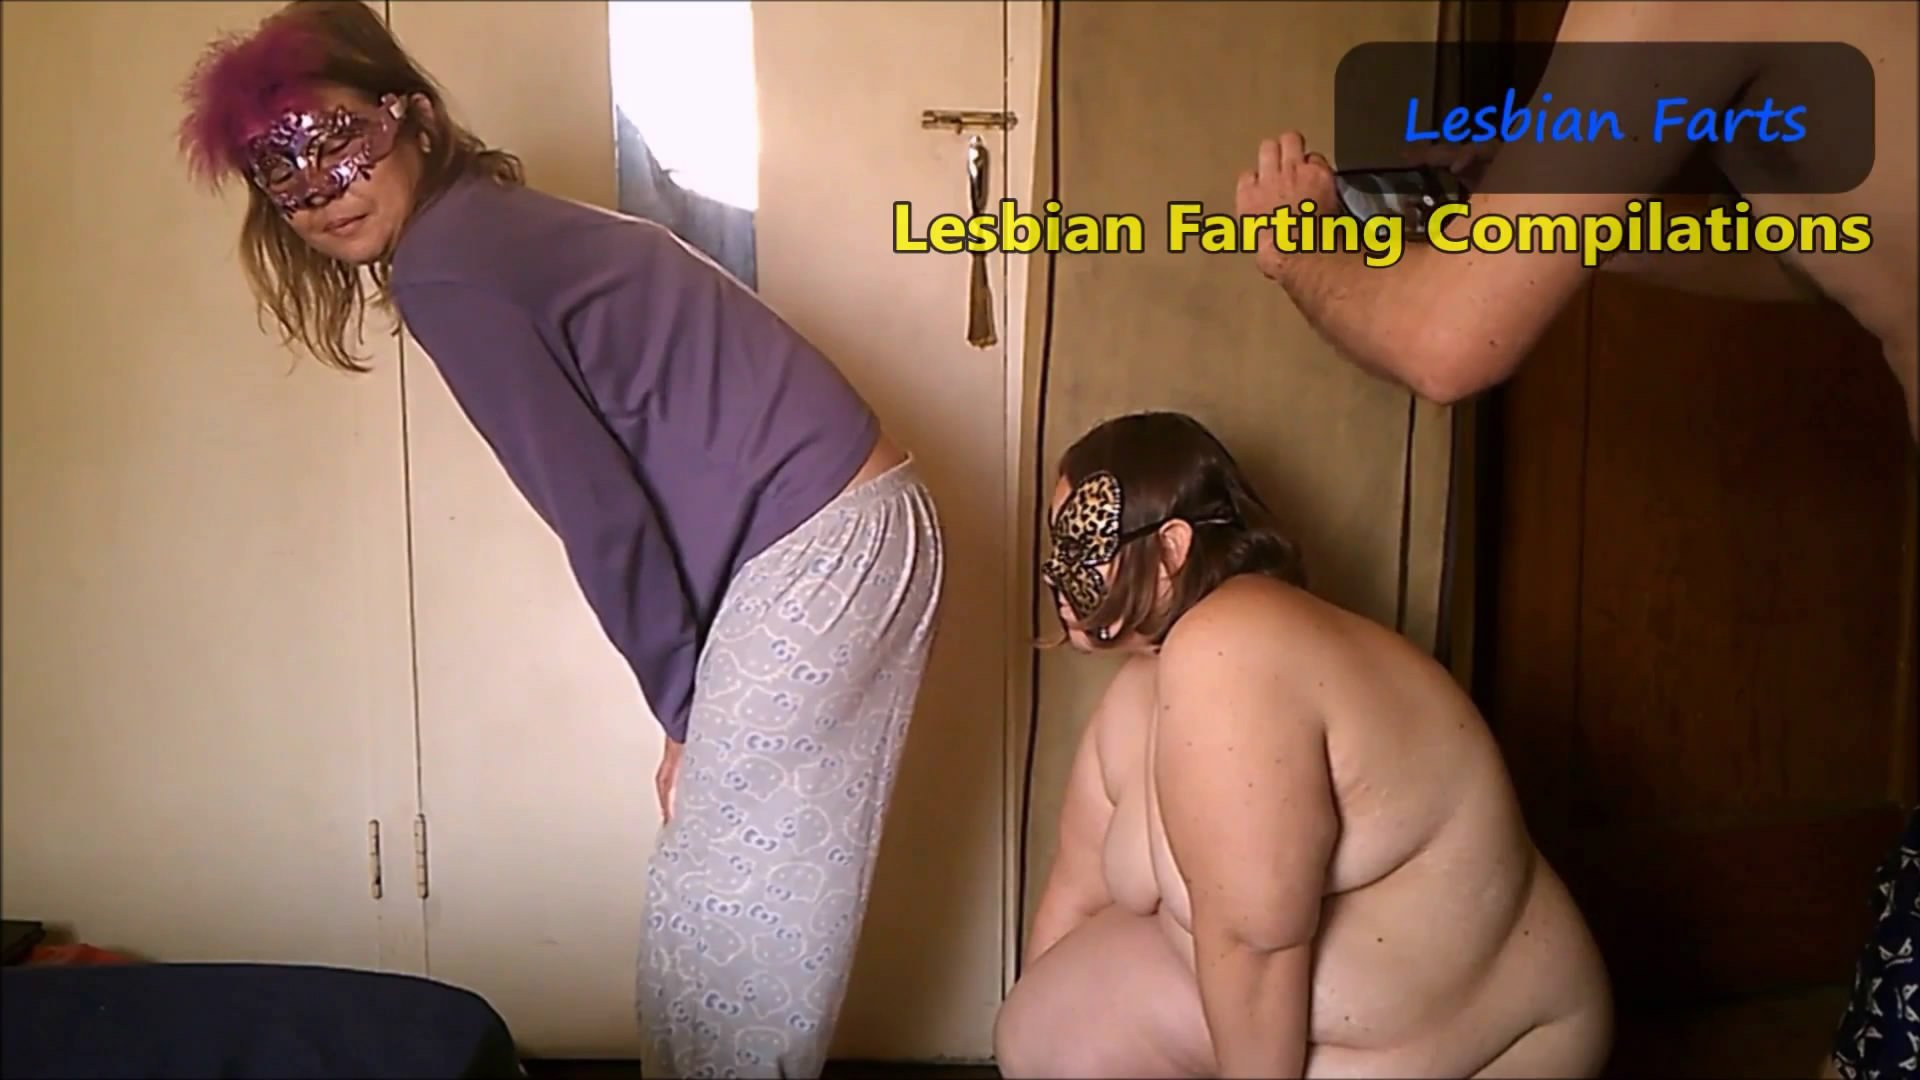 Lesbian Farting Complilations starring in video GoddessTempest (Release date: May 05, 2021) ($23.99 ScatShop)